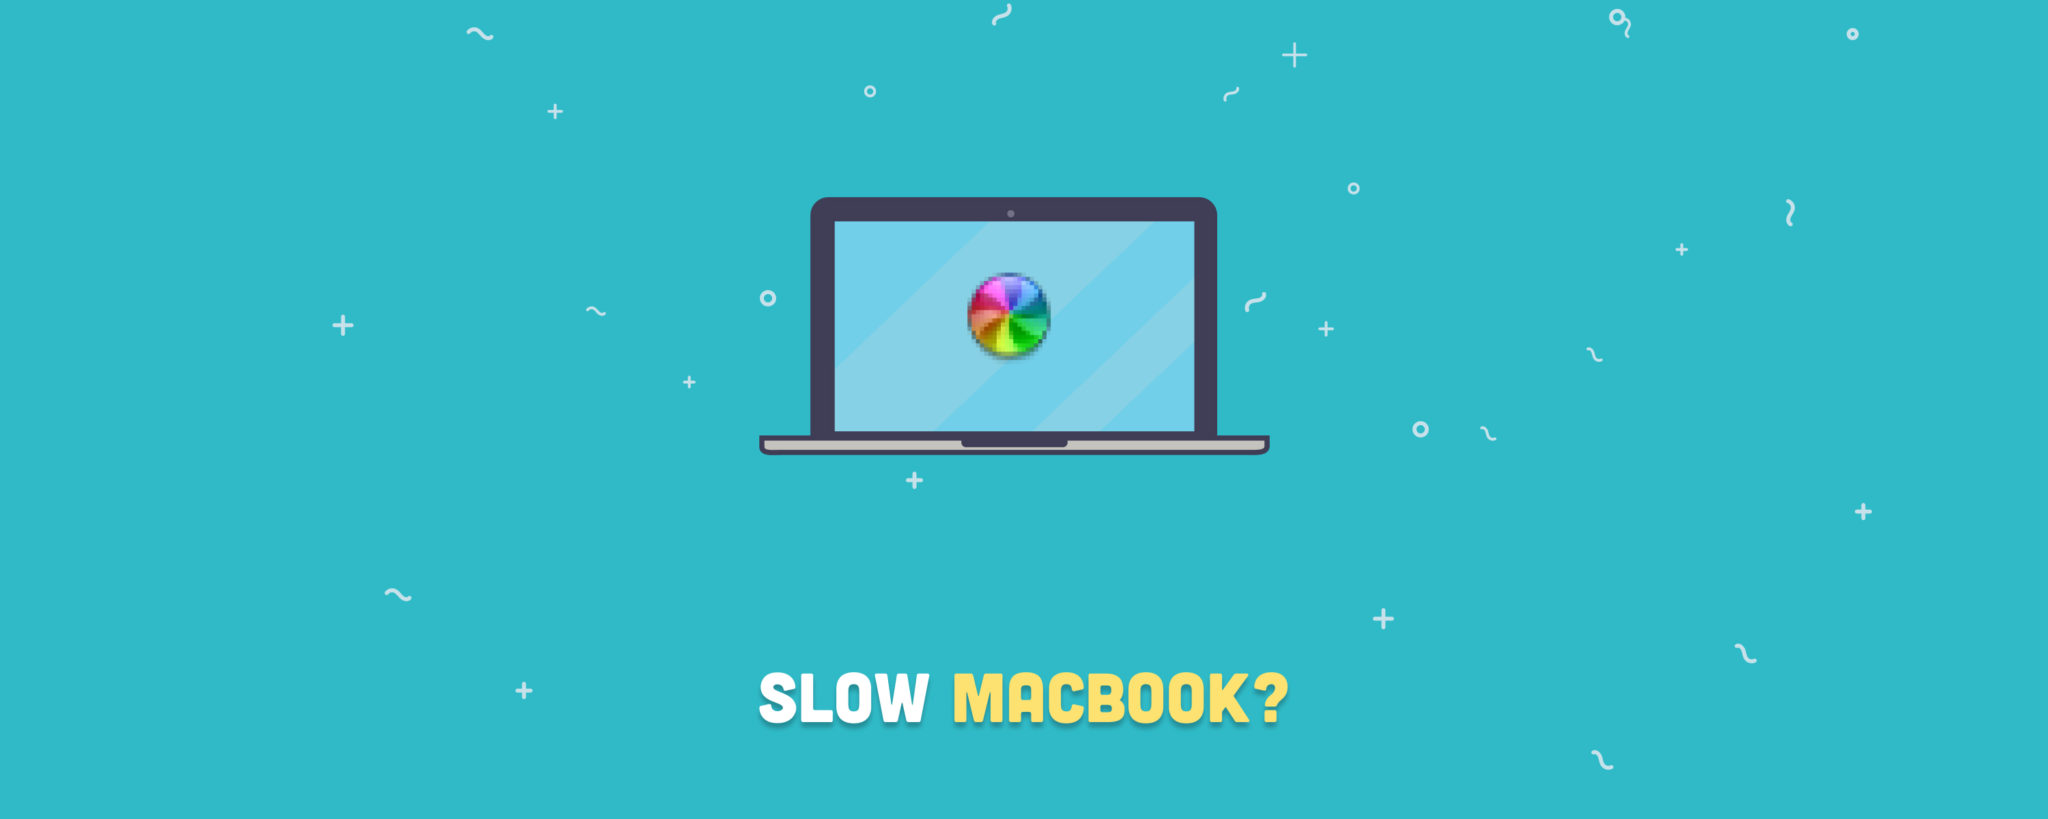 10 Ways to Speed up Your Slow MacBook (for Free!)